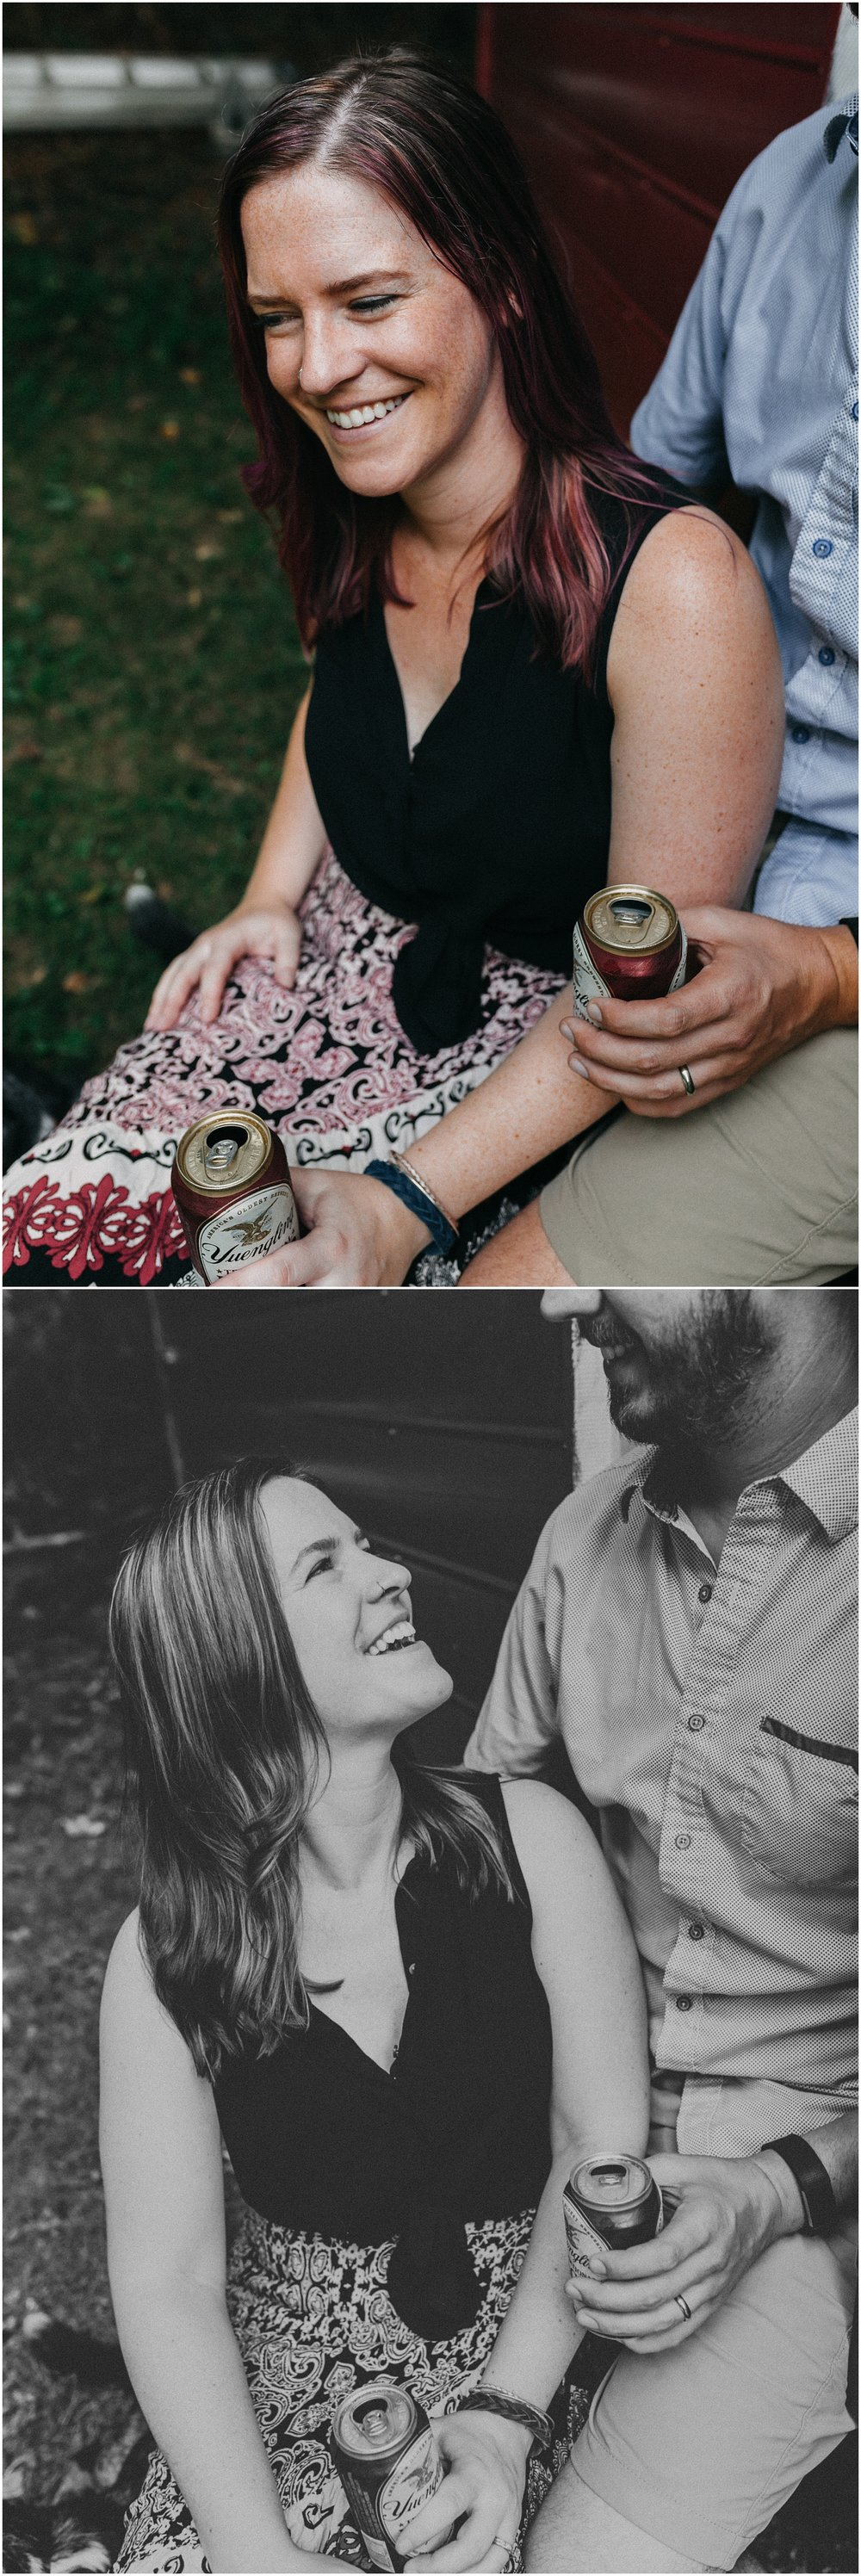 lifestyle-anniversary-engagement-photo session-rv-camping-road trip-vintage trailer-camping-outdoor photos_0214.jpg